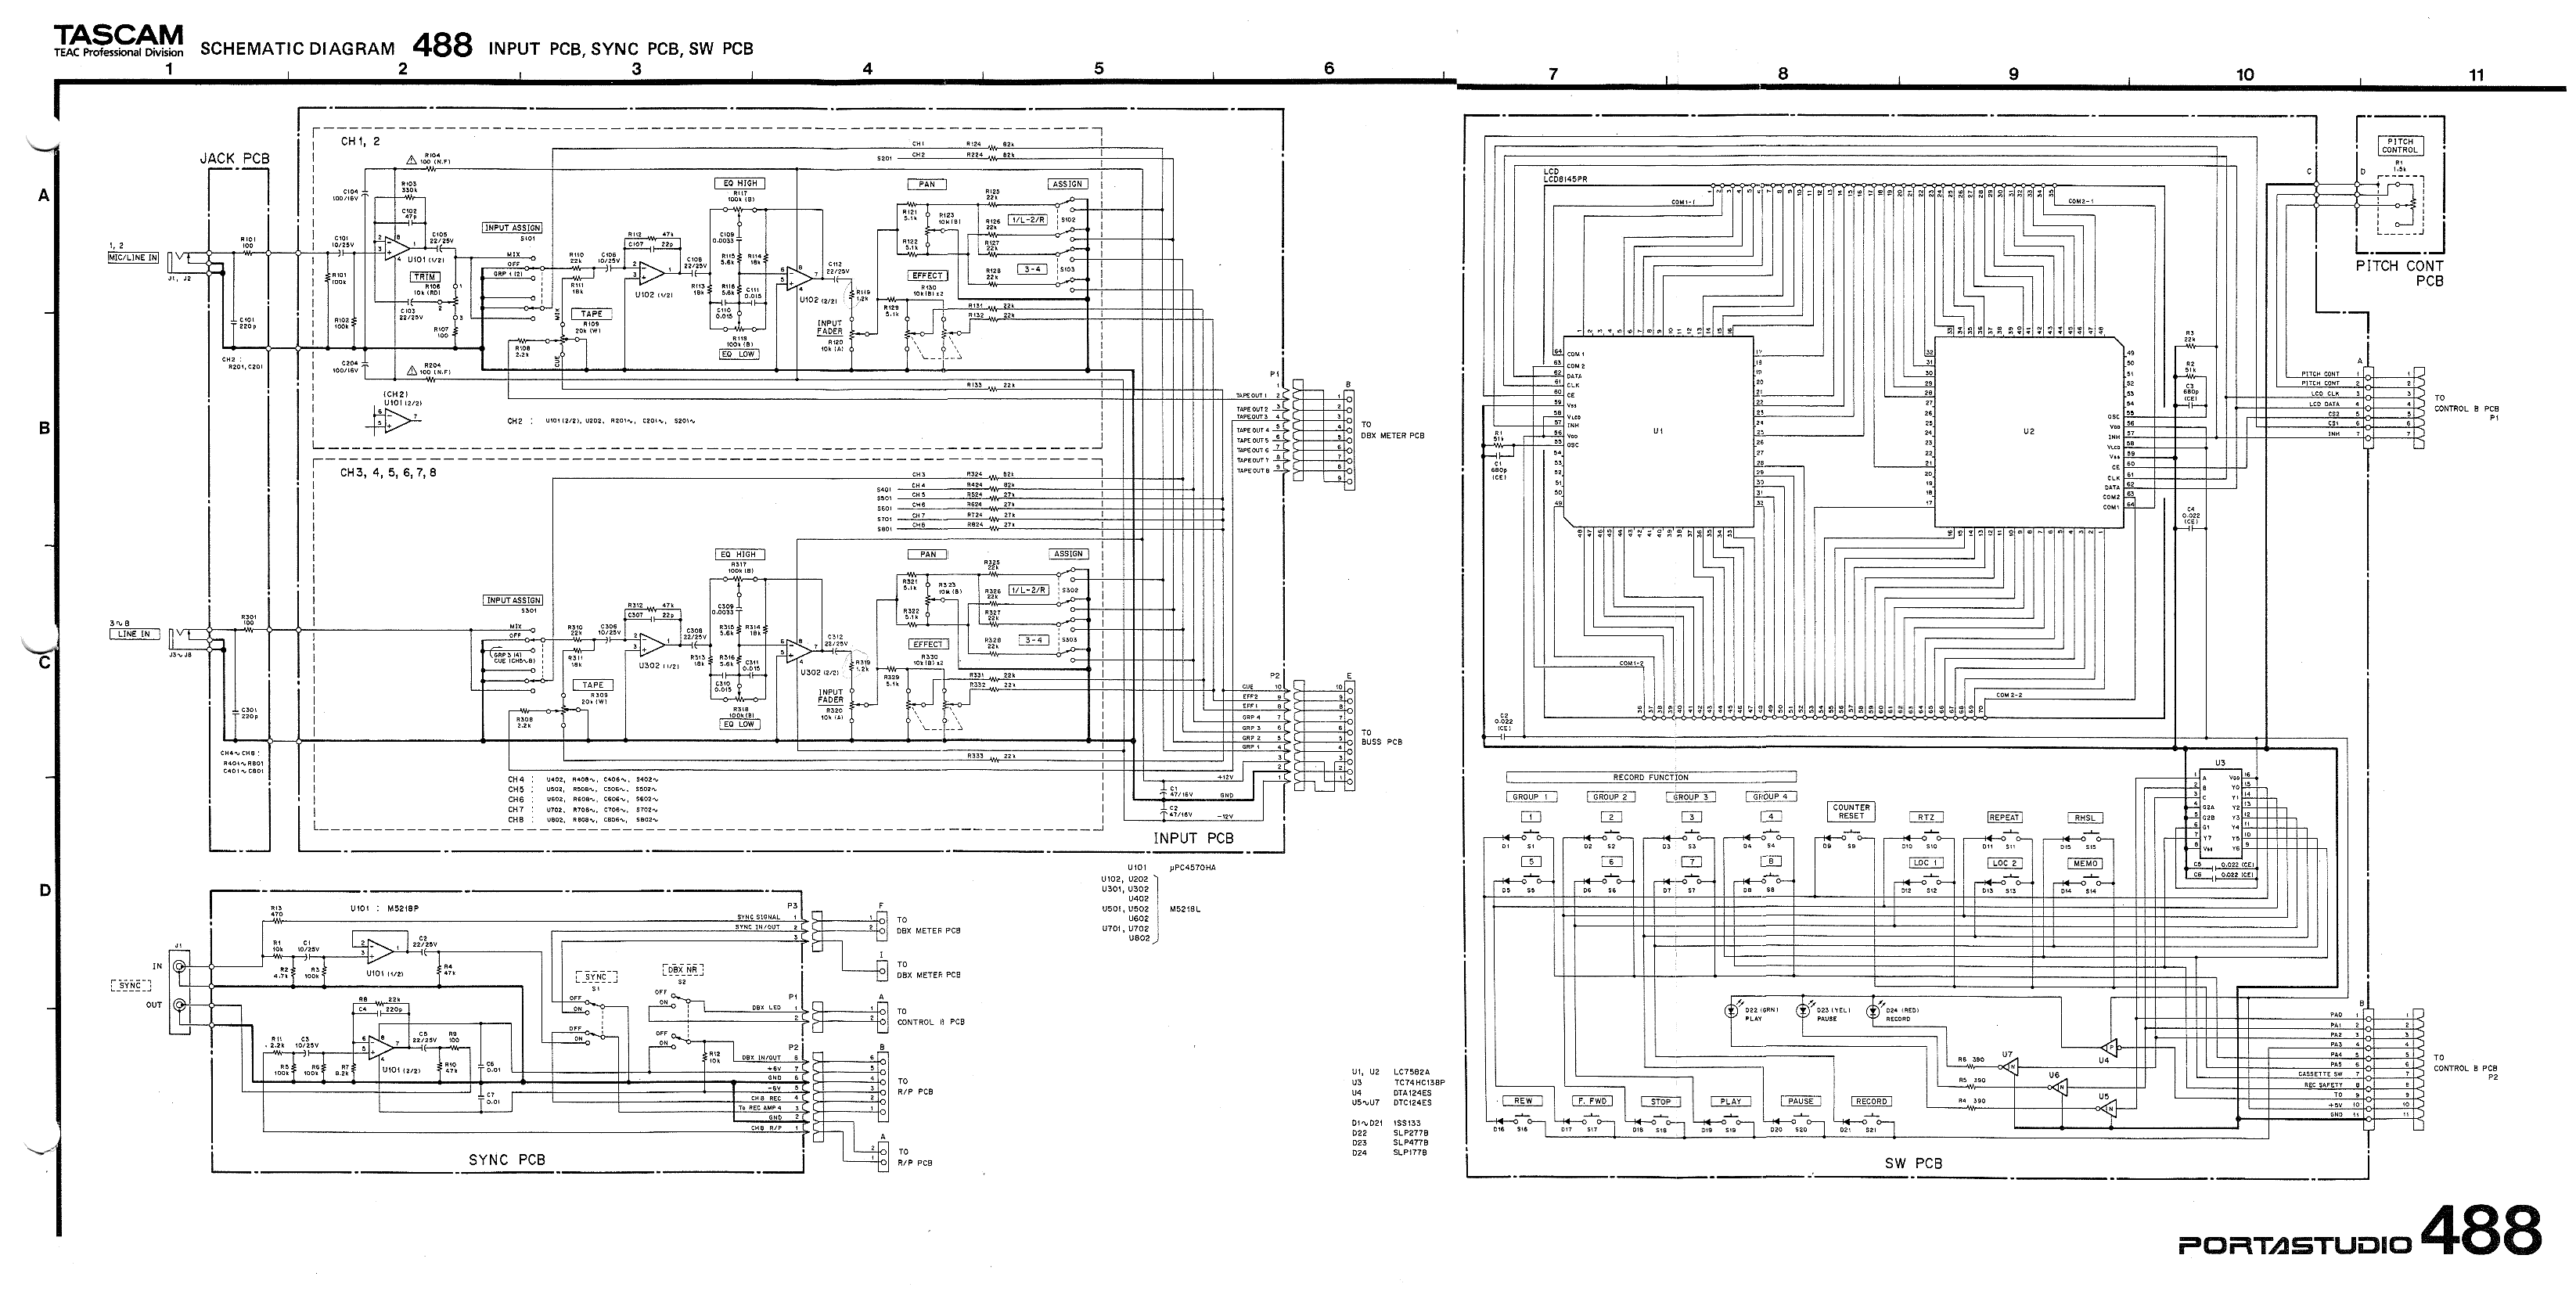 wrg 7679] tascam wire diagram Stero Wire Diagram index of information tascam 488 mk1 service manual (png) 02 oct 2008